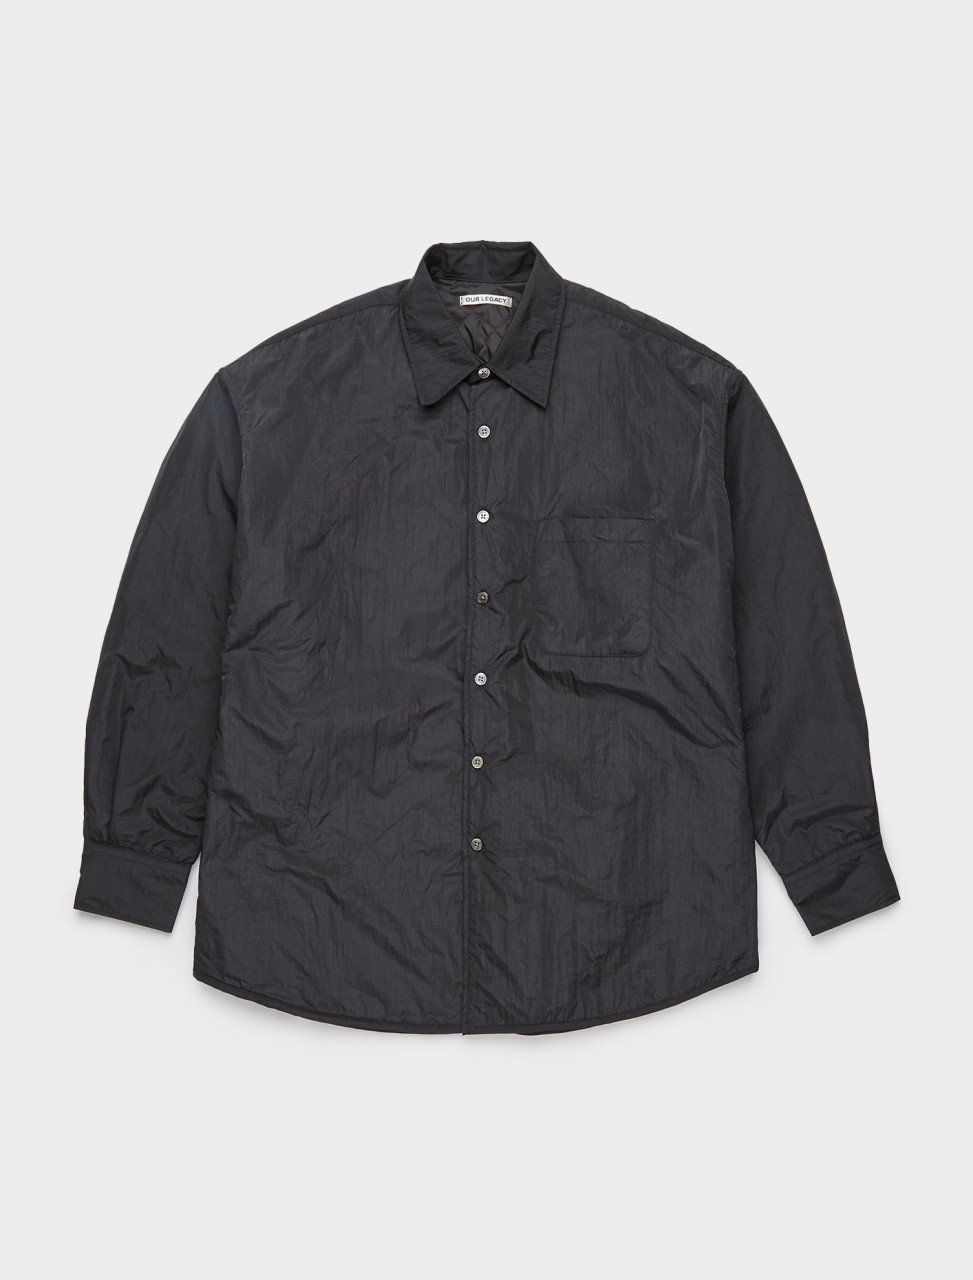 150-M4192TP OUR LEGACY TECH BORROWED JACKET BLACK